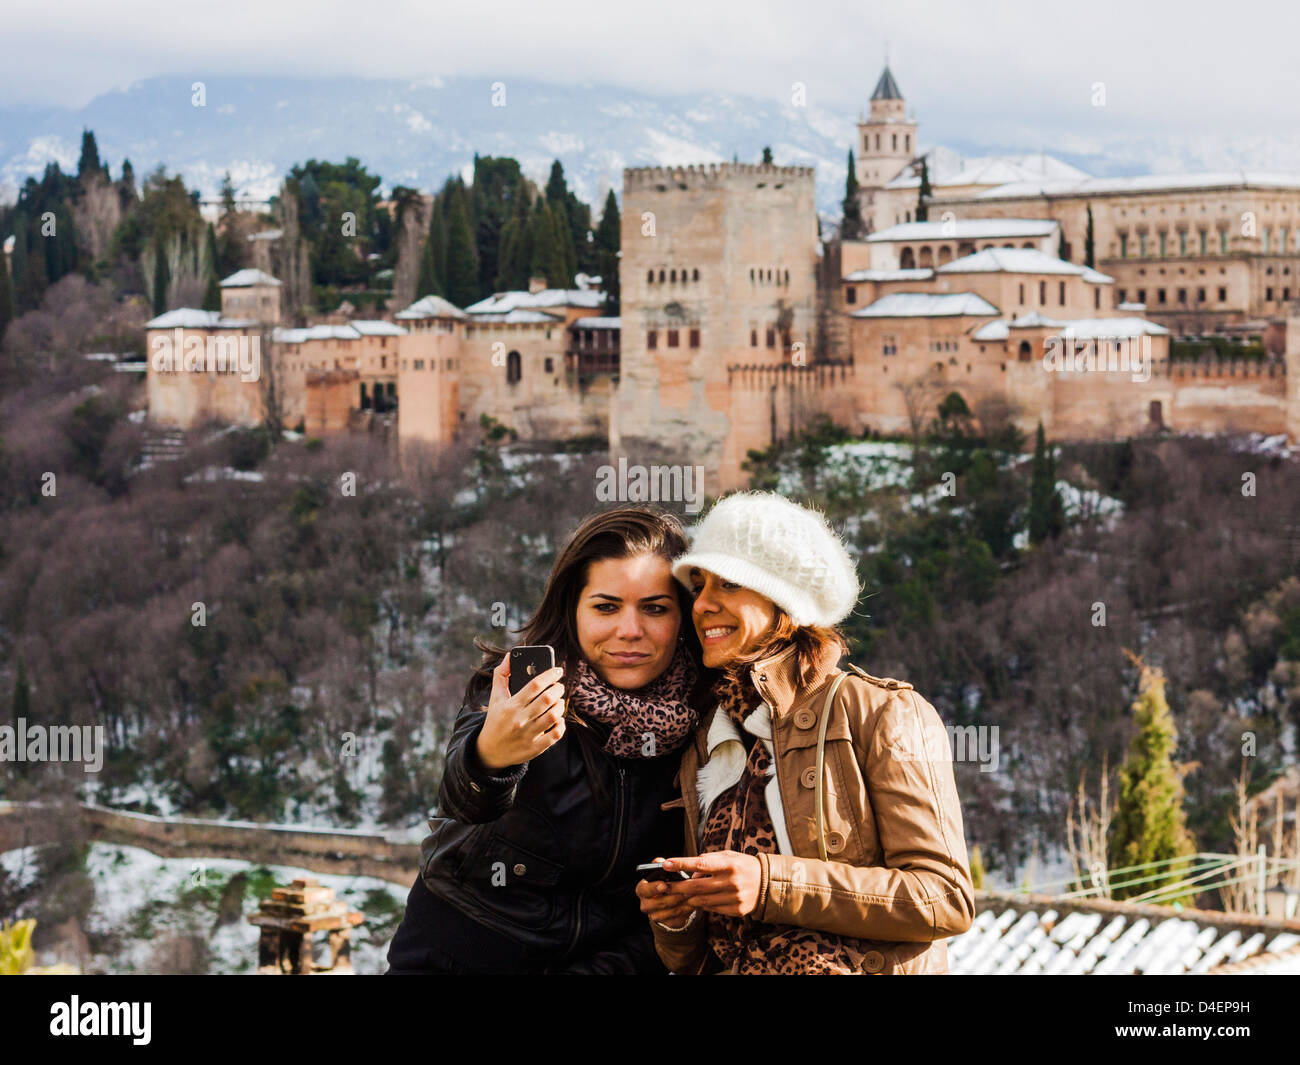 Two female tourist friends taking a selfie with a cellphone camera and snowcapped Alhambra palace in Background. - Stock Image